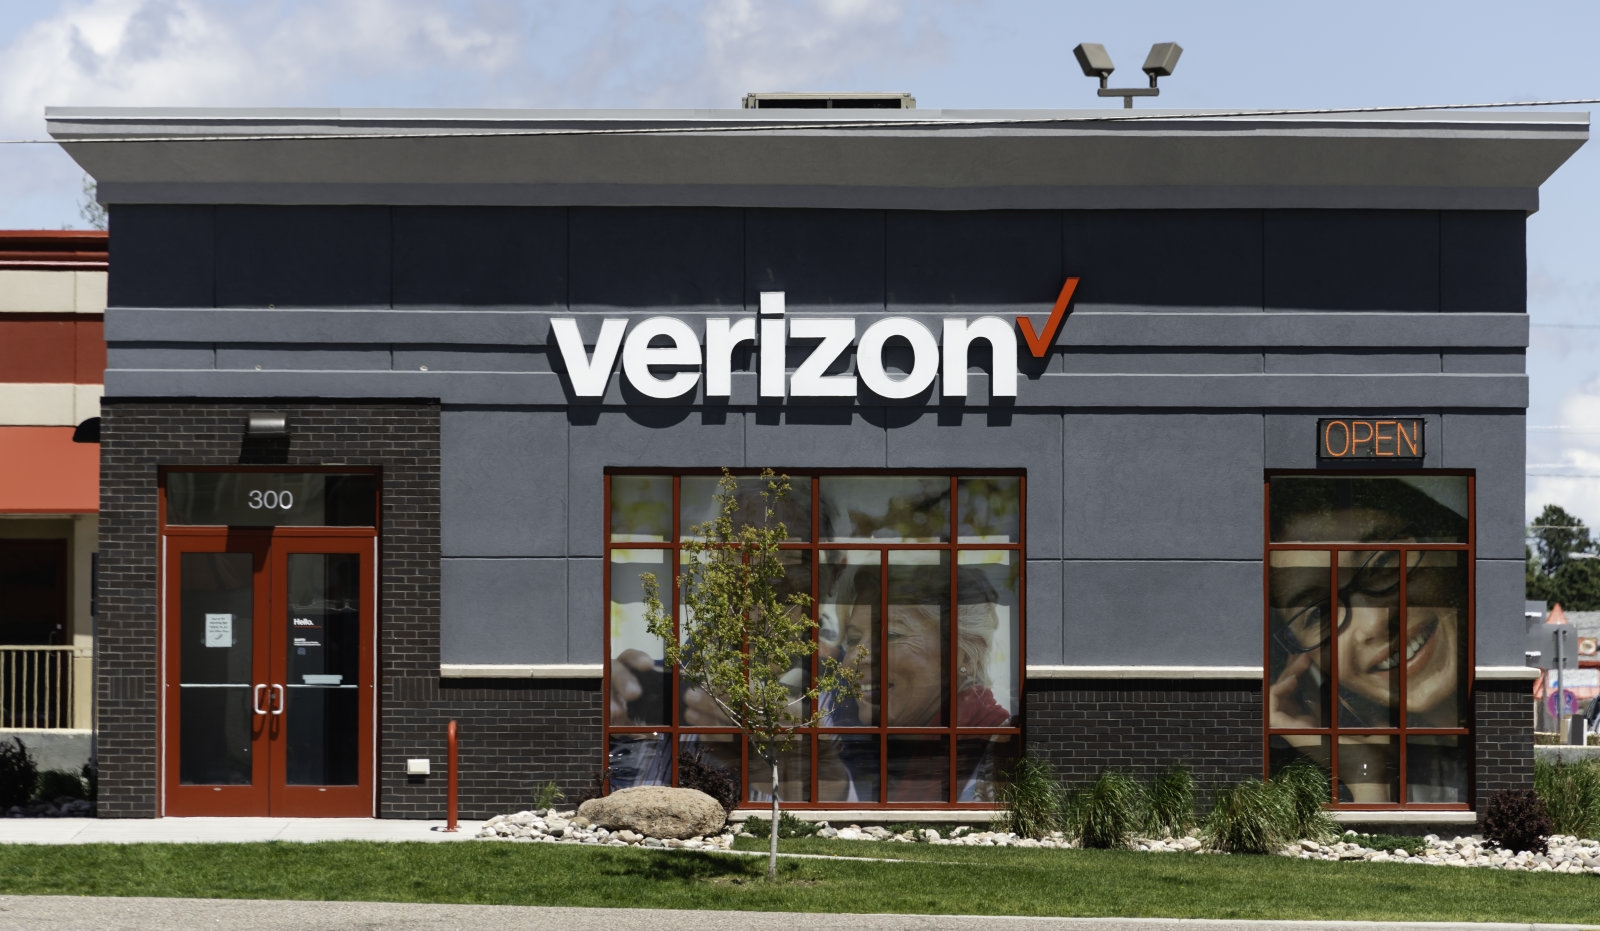 FCC gives Verizon extra mobile capacity to manage emergency demand | DeviceDaily.com